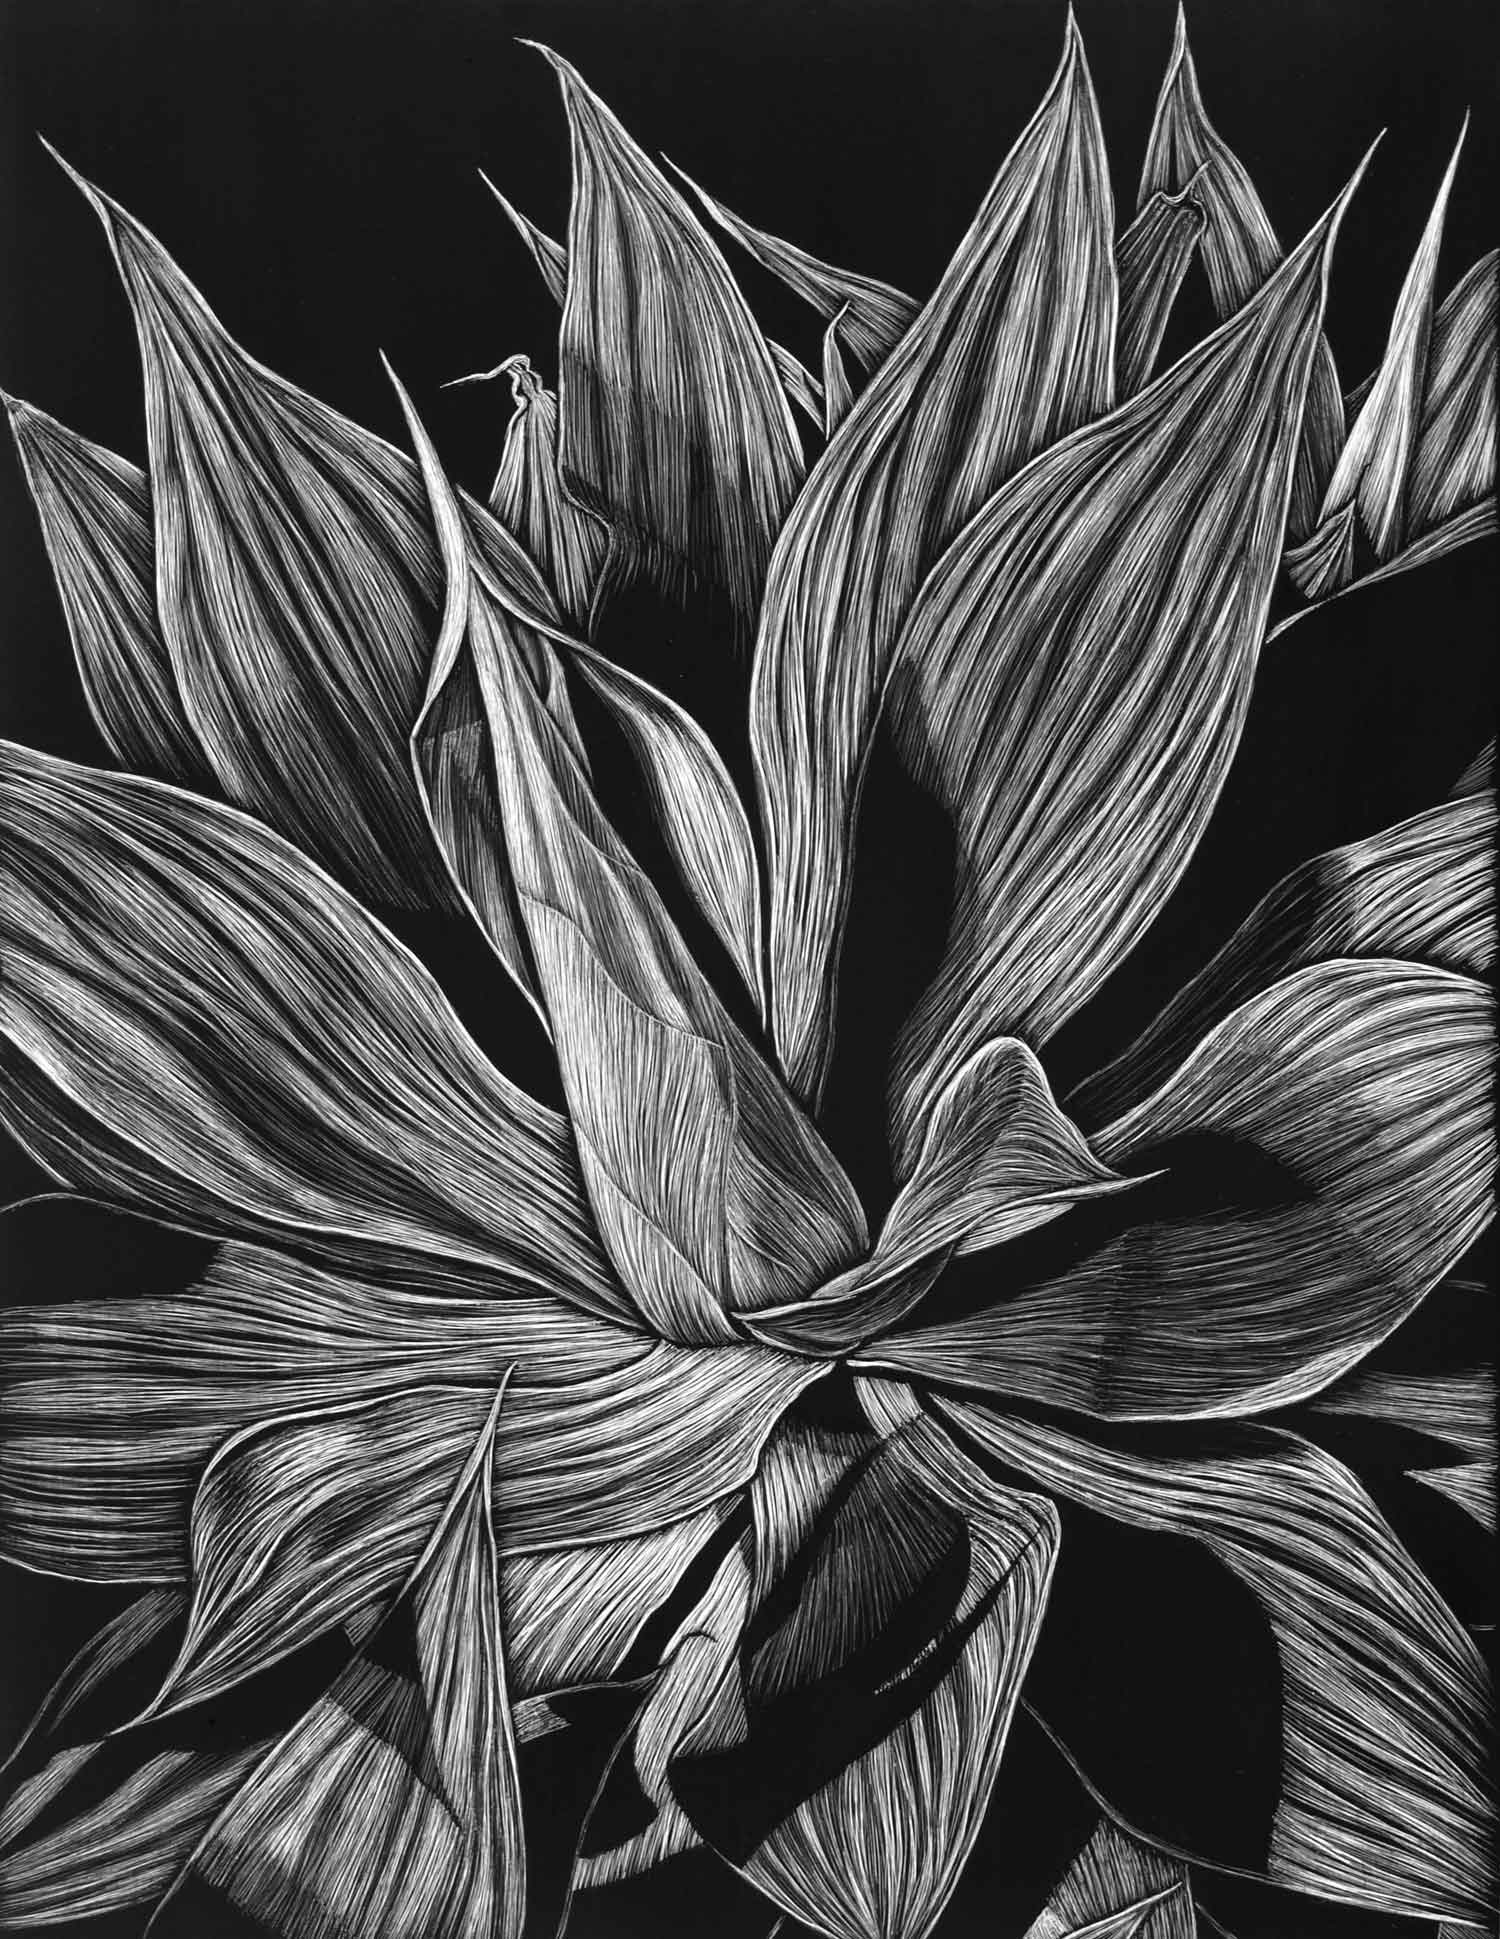 AGAVE, CLAREVILLE BEACH II  45.5 X 35.5 CM, EDITION OF 50  PIGMENT ON COTTON RAG PAPER  $800